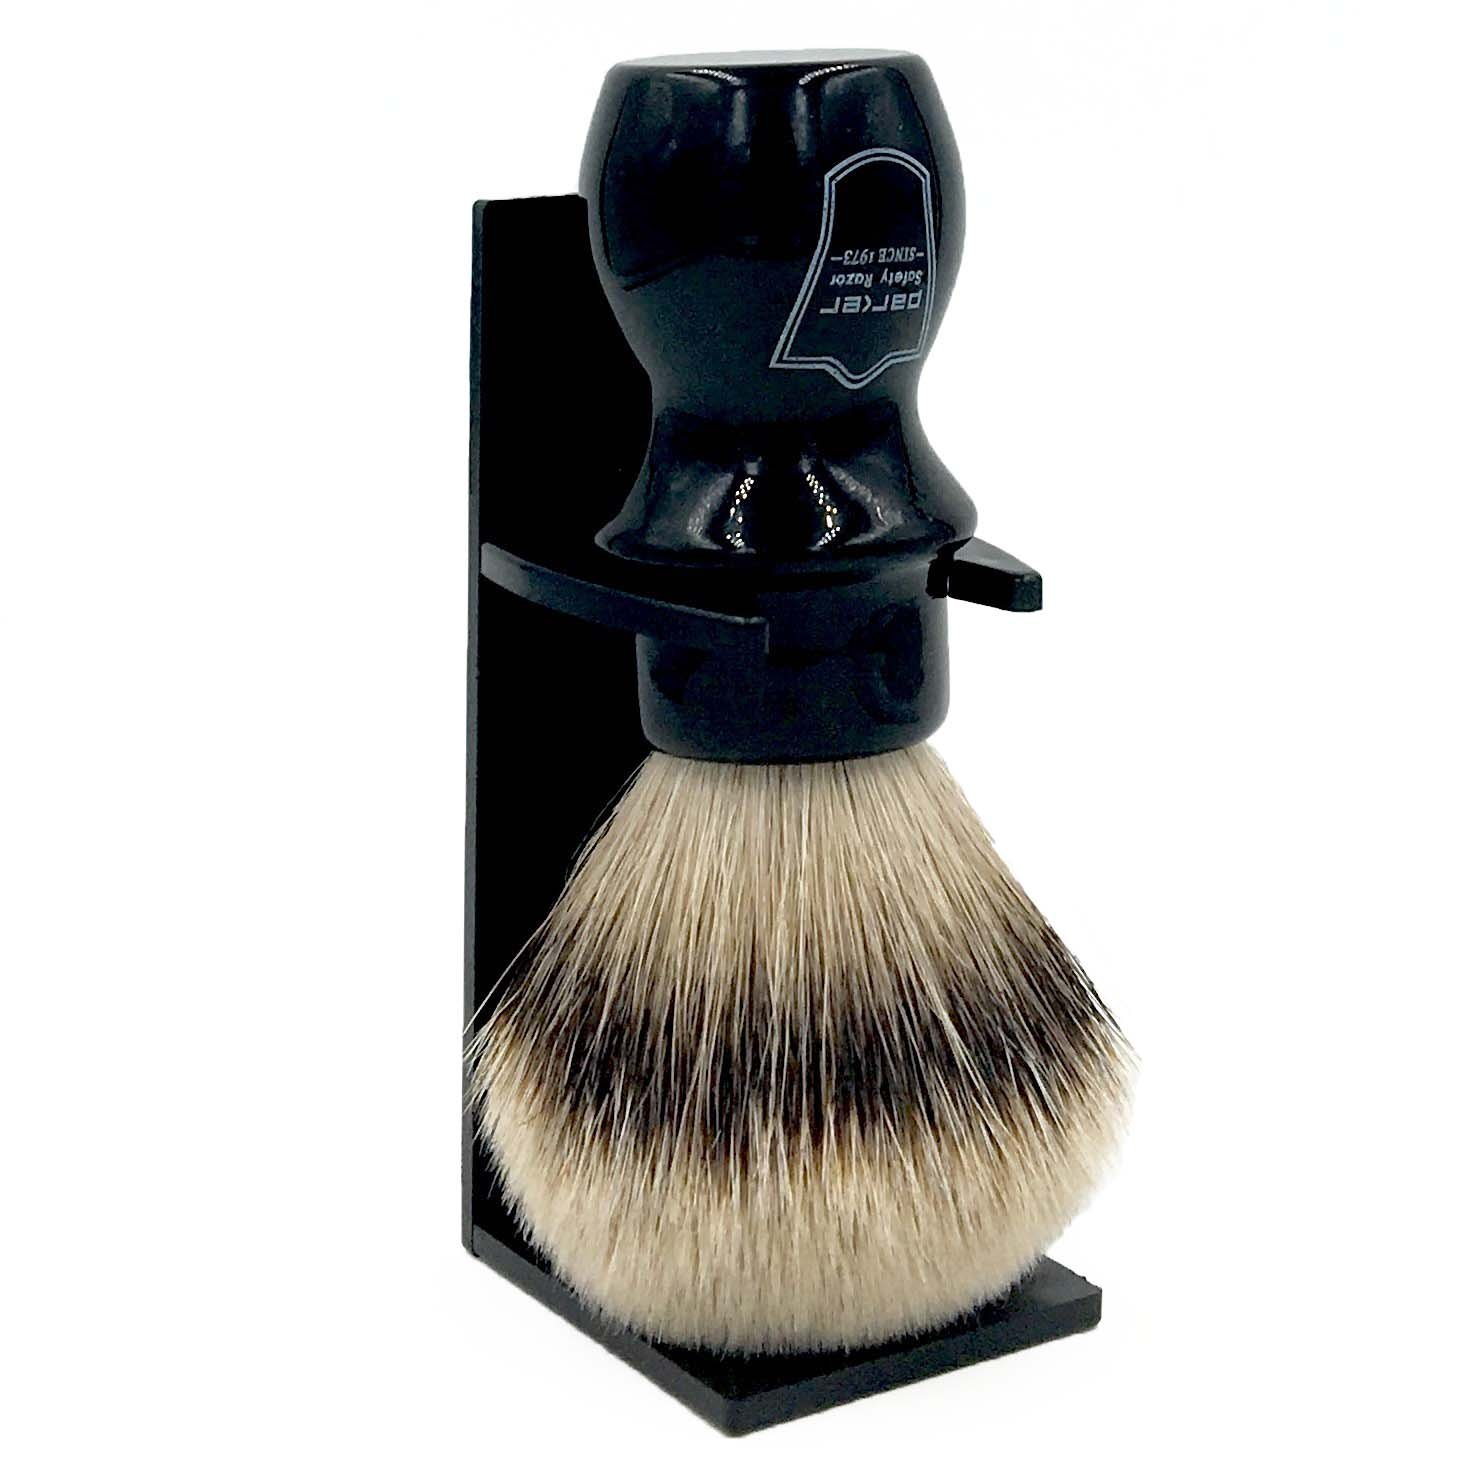 Parker Safety Razor Handmade Deluxe''Mug Shaving Brush'' - 100% SILVERTIP Badger BRISTLES - Brush Stand Included - Black Handle by Parker Safety Razor